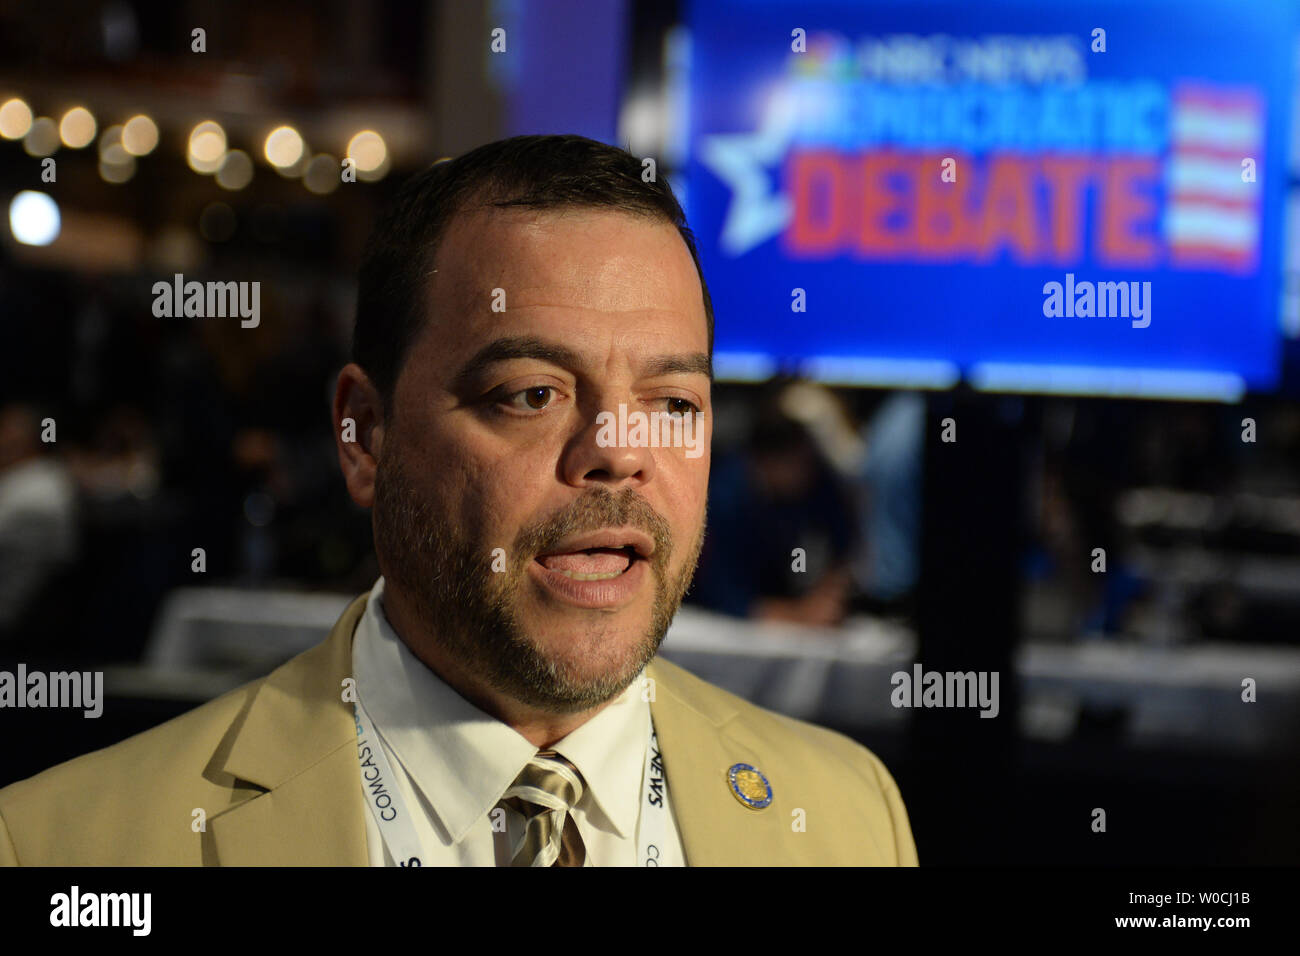 New York State Senators 2020 Miami, FL, USA. 26th June, 2019. New York State Senator from the